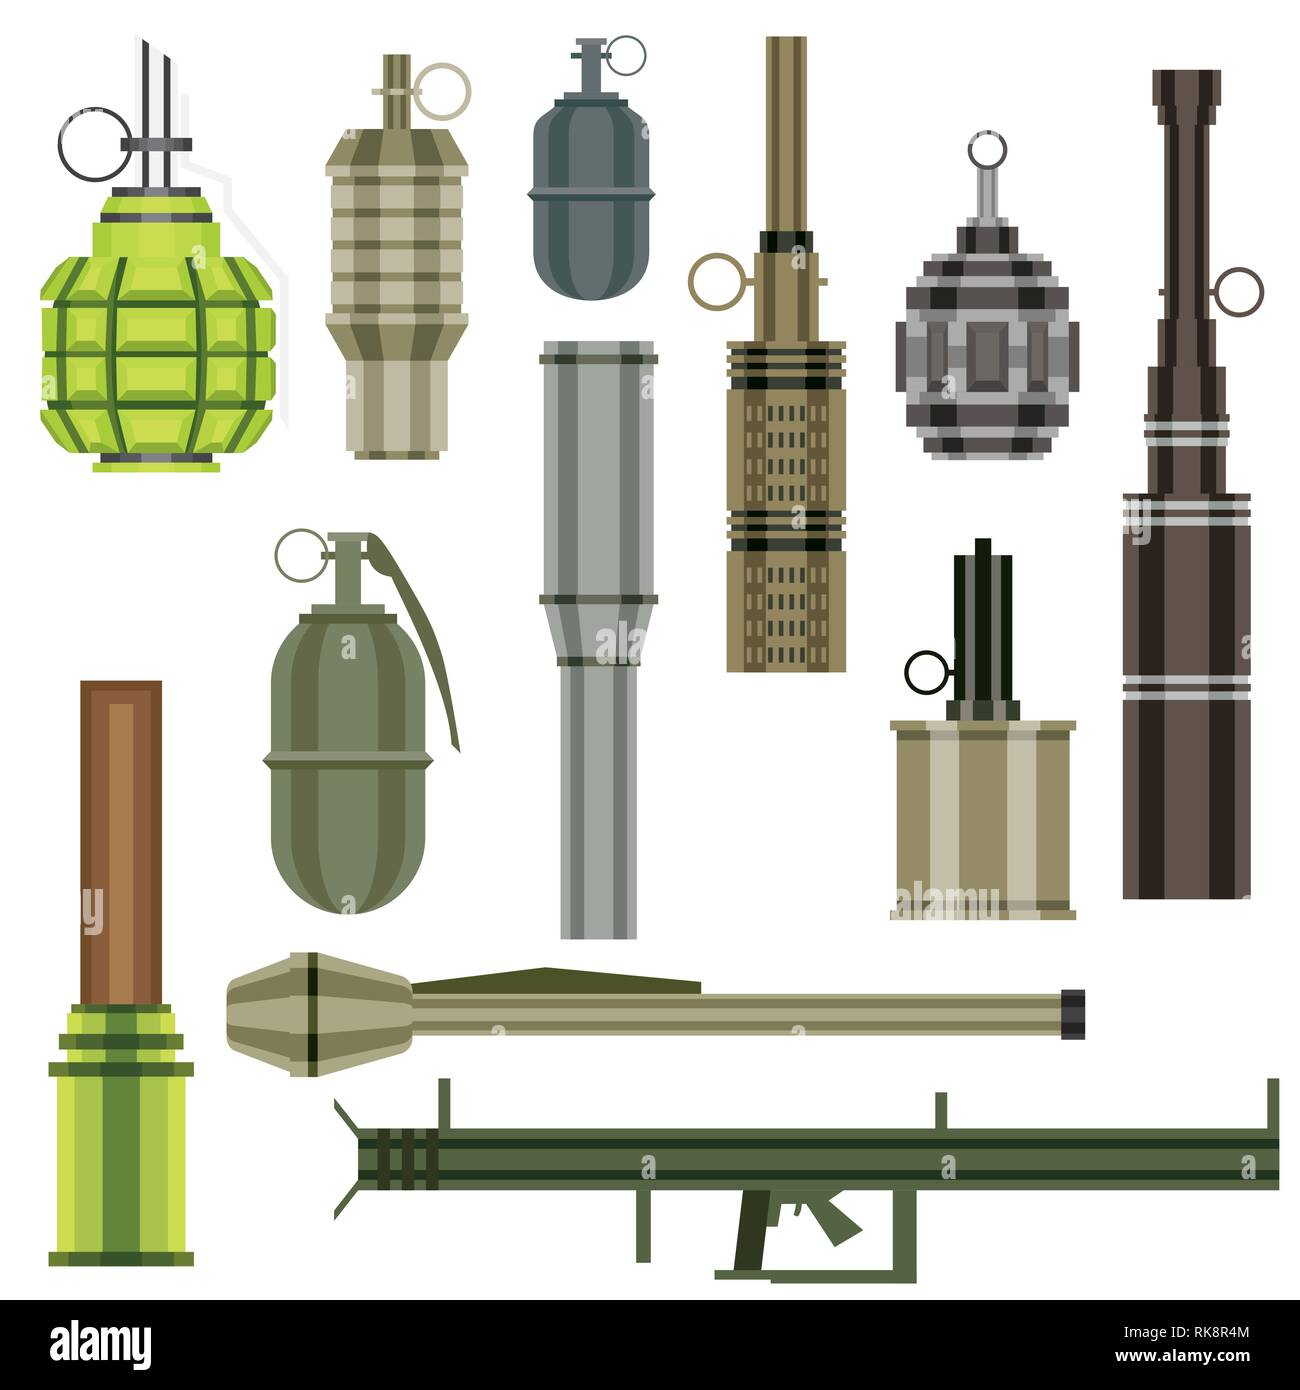 Grenade Set. Military Weapon. Grenade Launcher Isolated on White Background. Vector Illustration. - Stock Vector